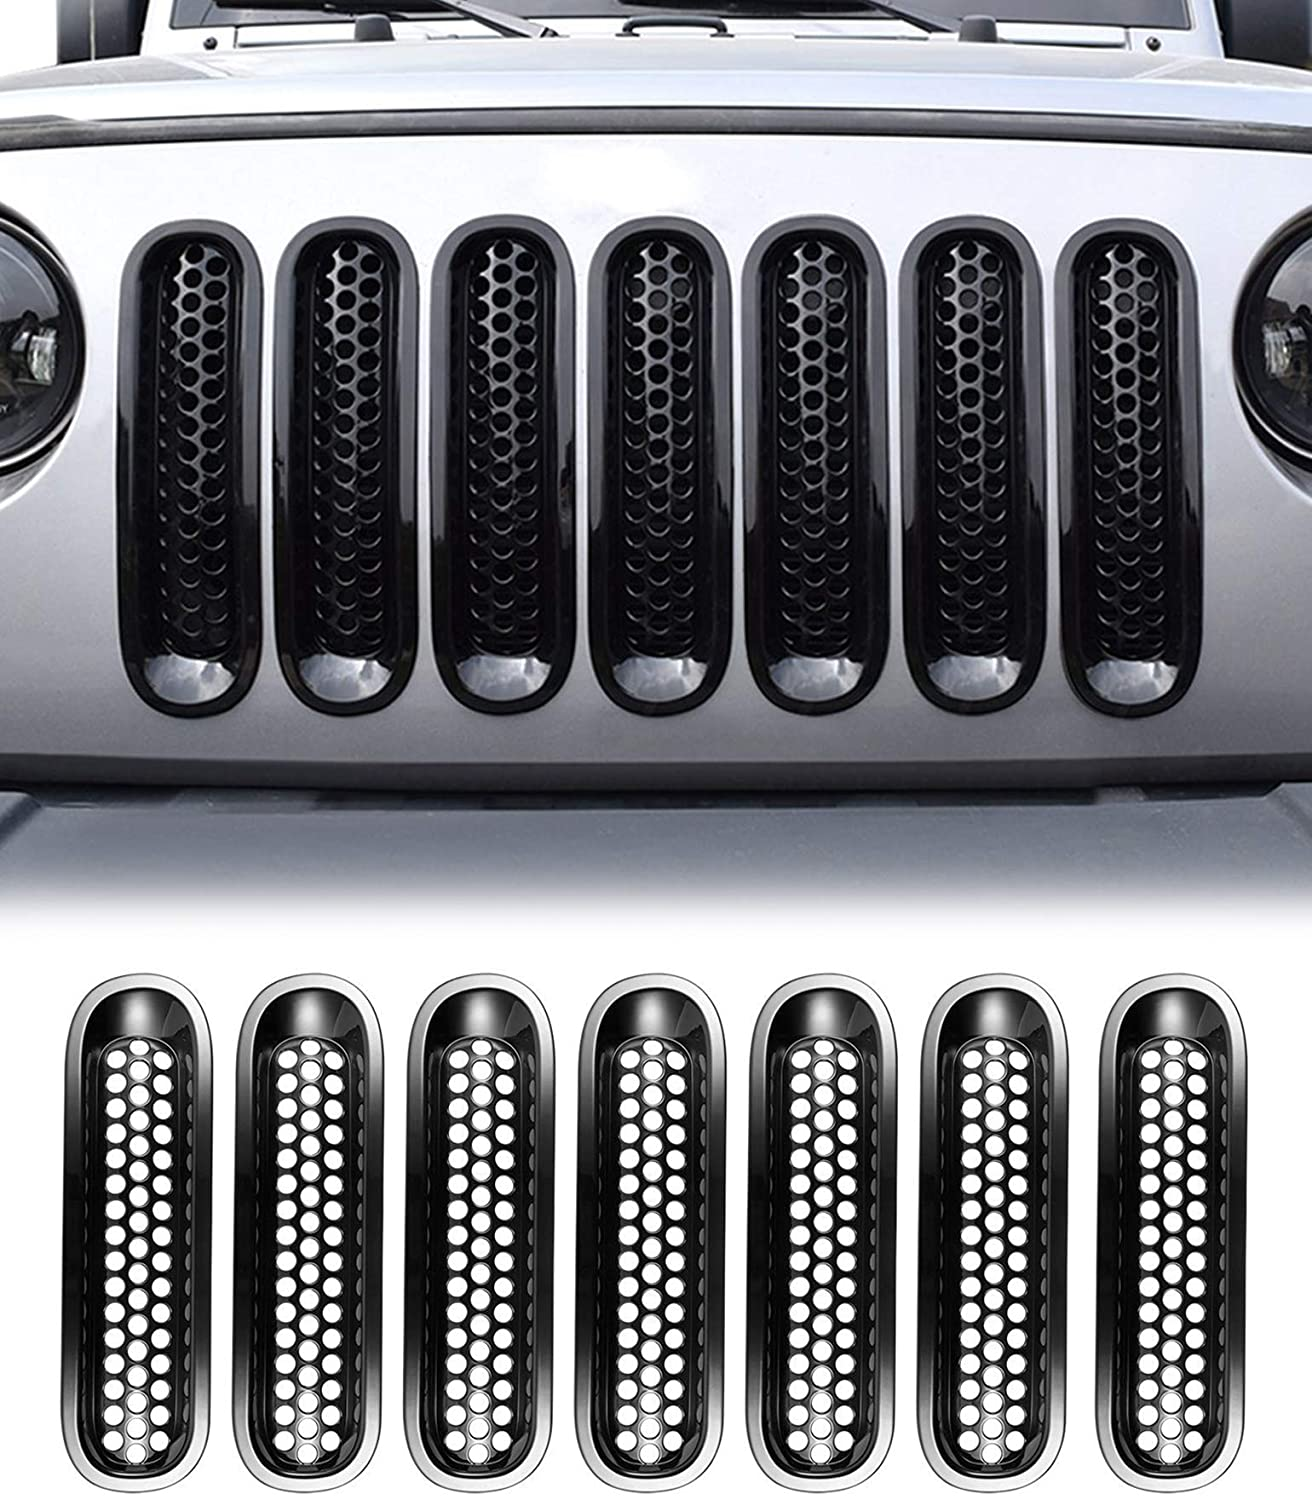 Landrol Glossy Black Front Grill Mesh Inserts 7 Pcs replacement for 2007-2015 Wrangler JK Sports Sahara Freedom Rubicon 2 & Unlimited 4 Doors